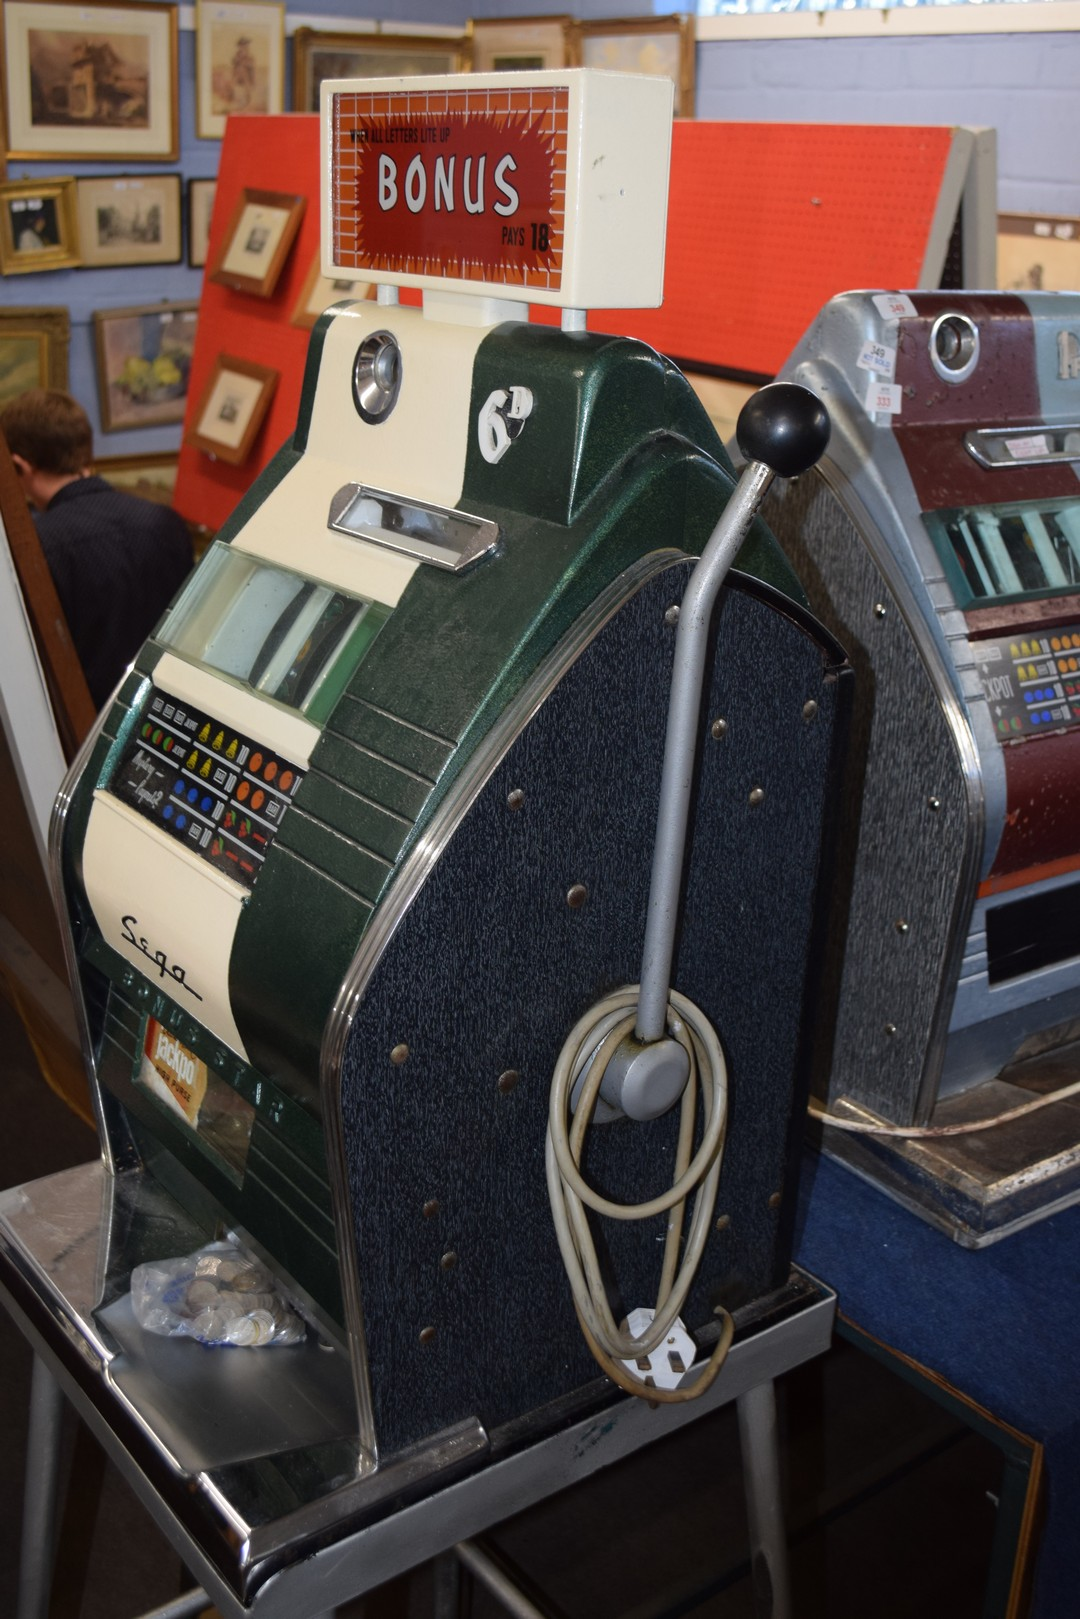 Bonus Star by Sega one-armed bandit fruit machine with electric light-up, approx 80cm high, together - Image 4 of 11